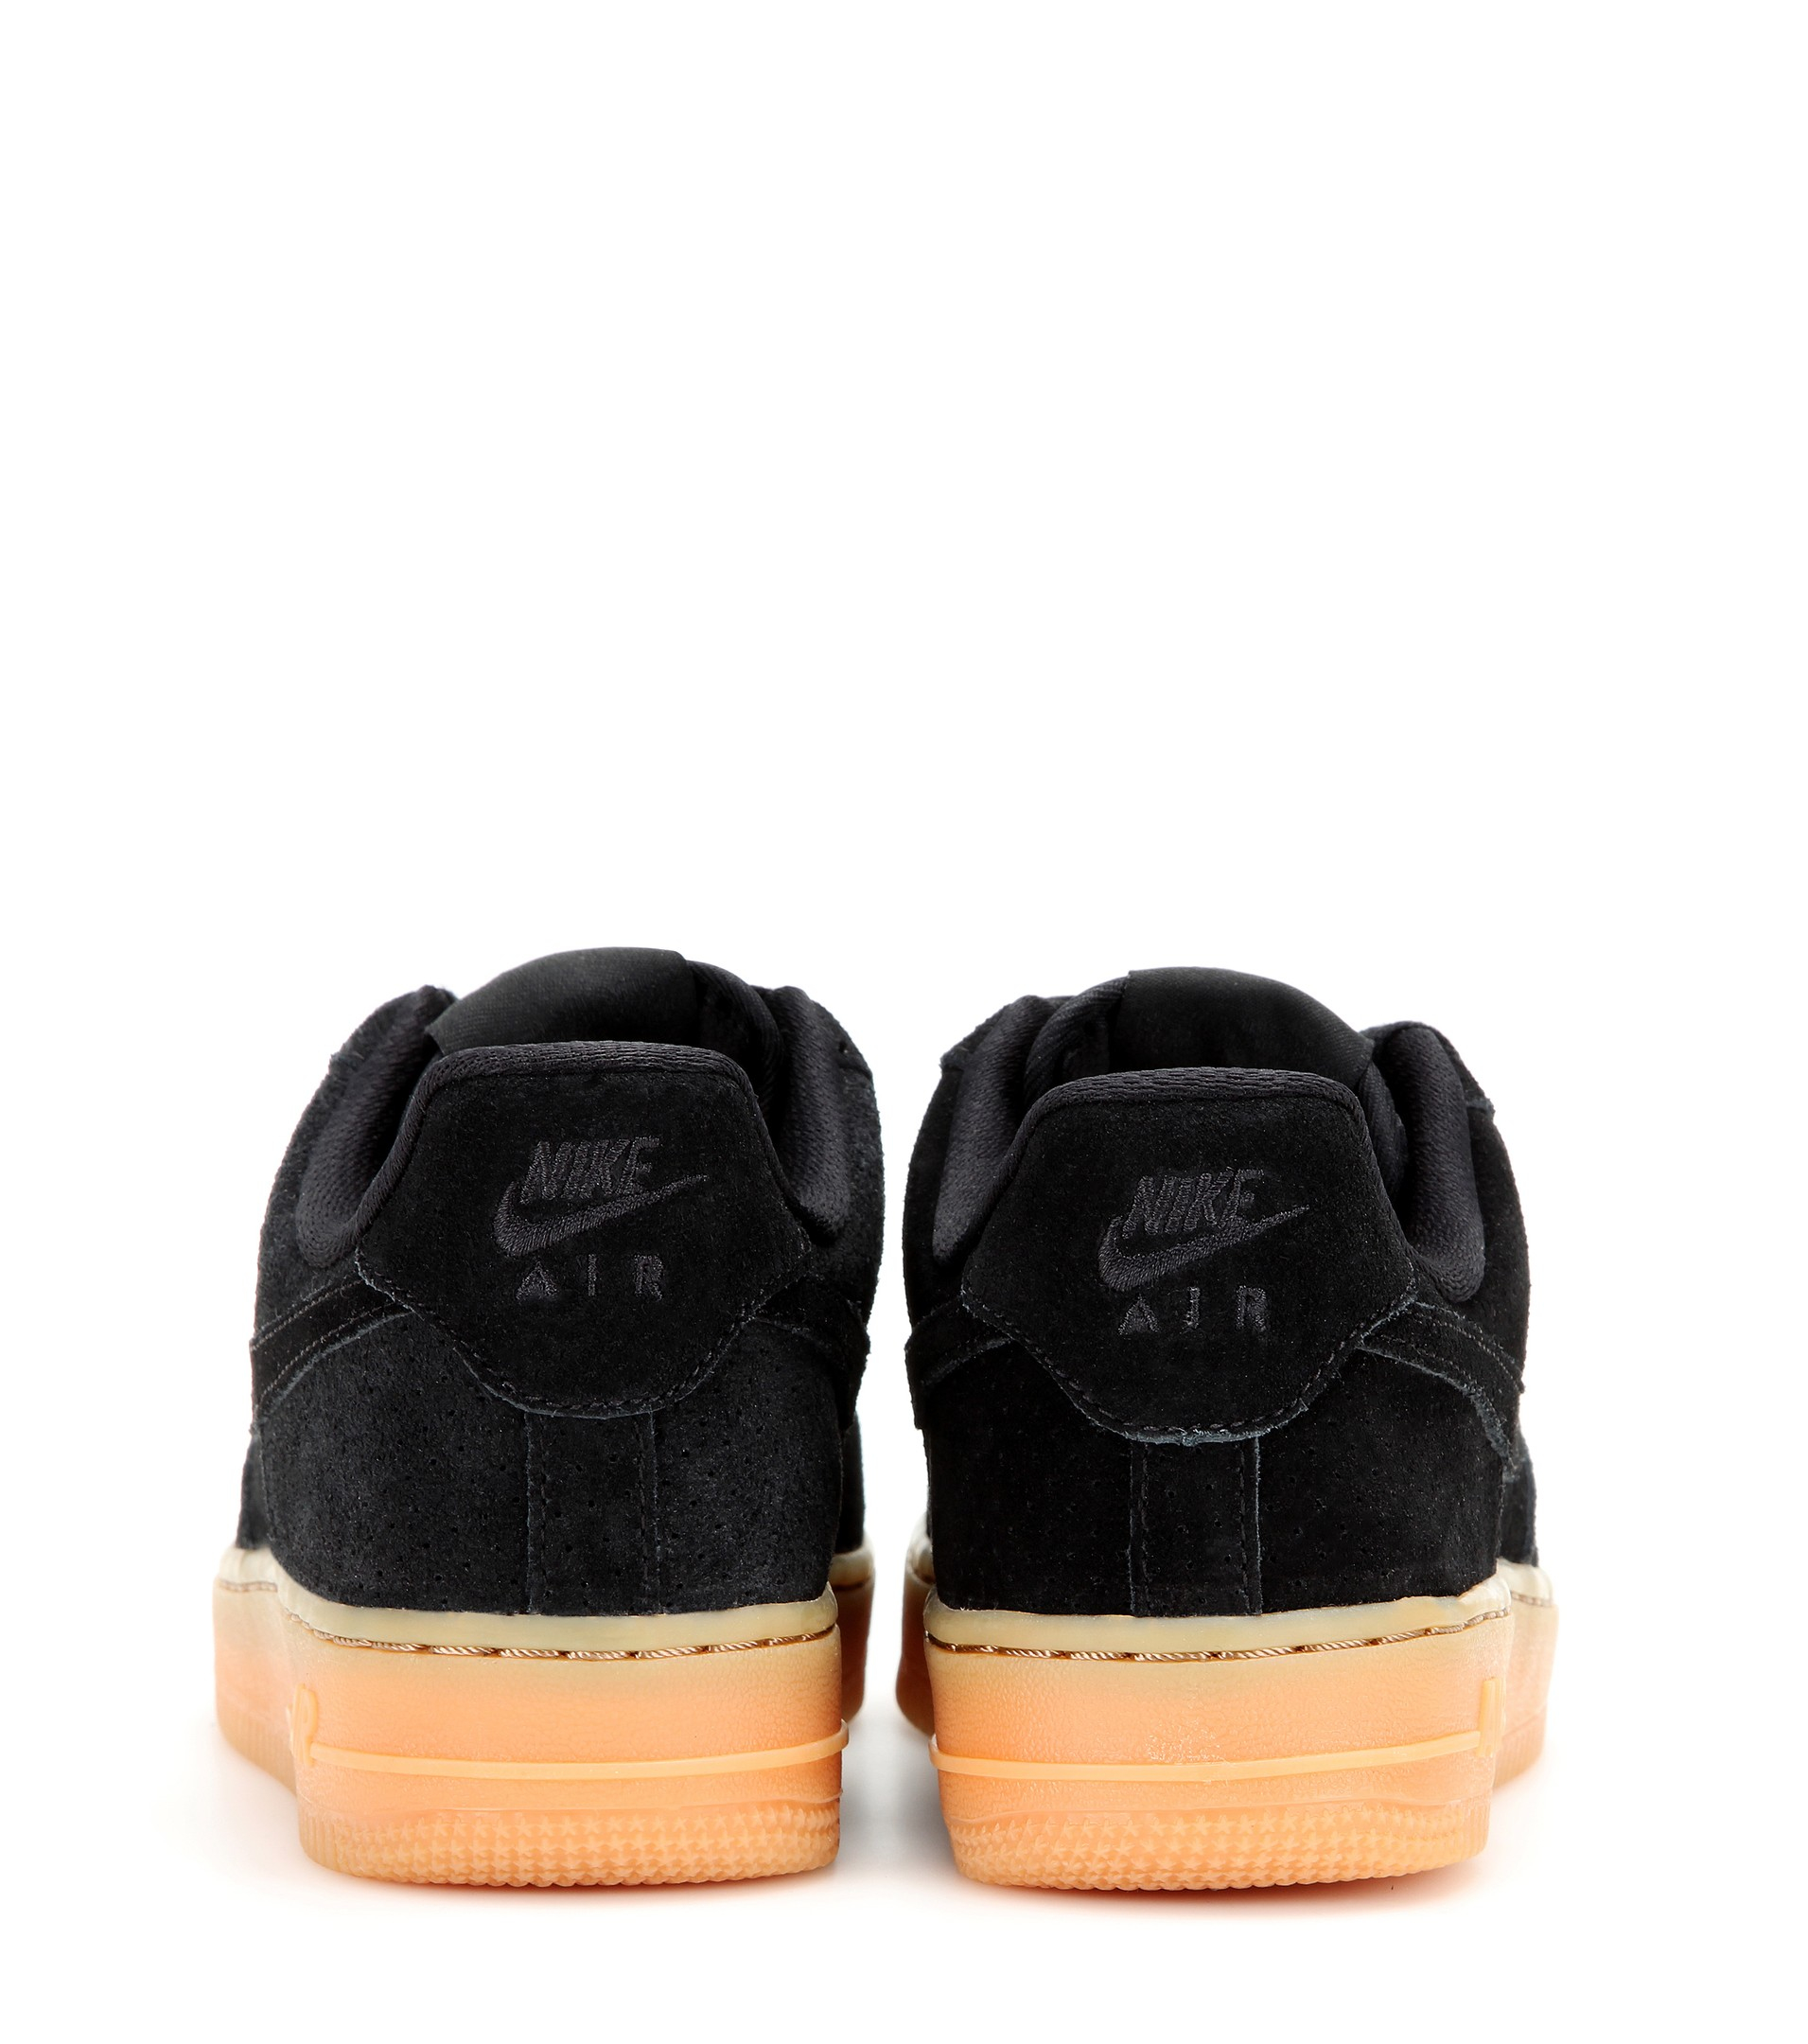 lyst nike air force 1 suede sneakers in black